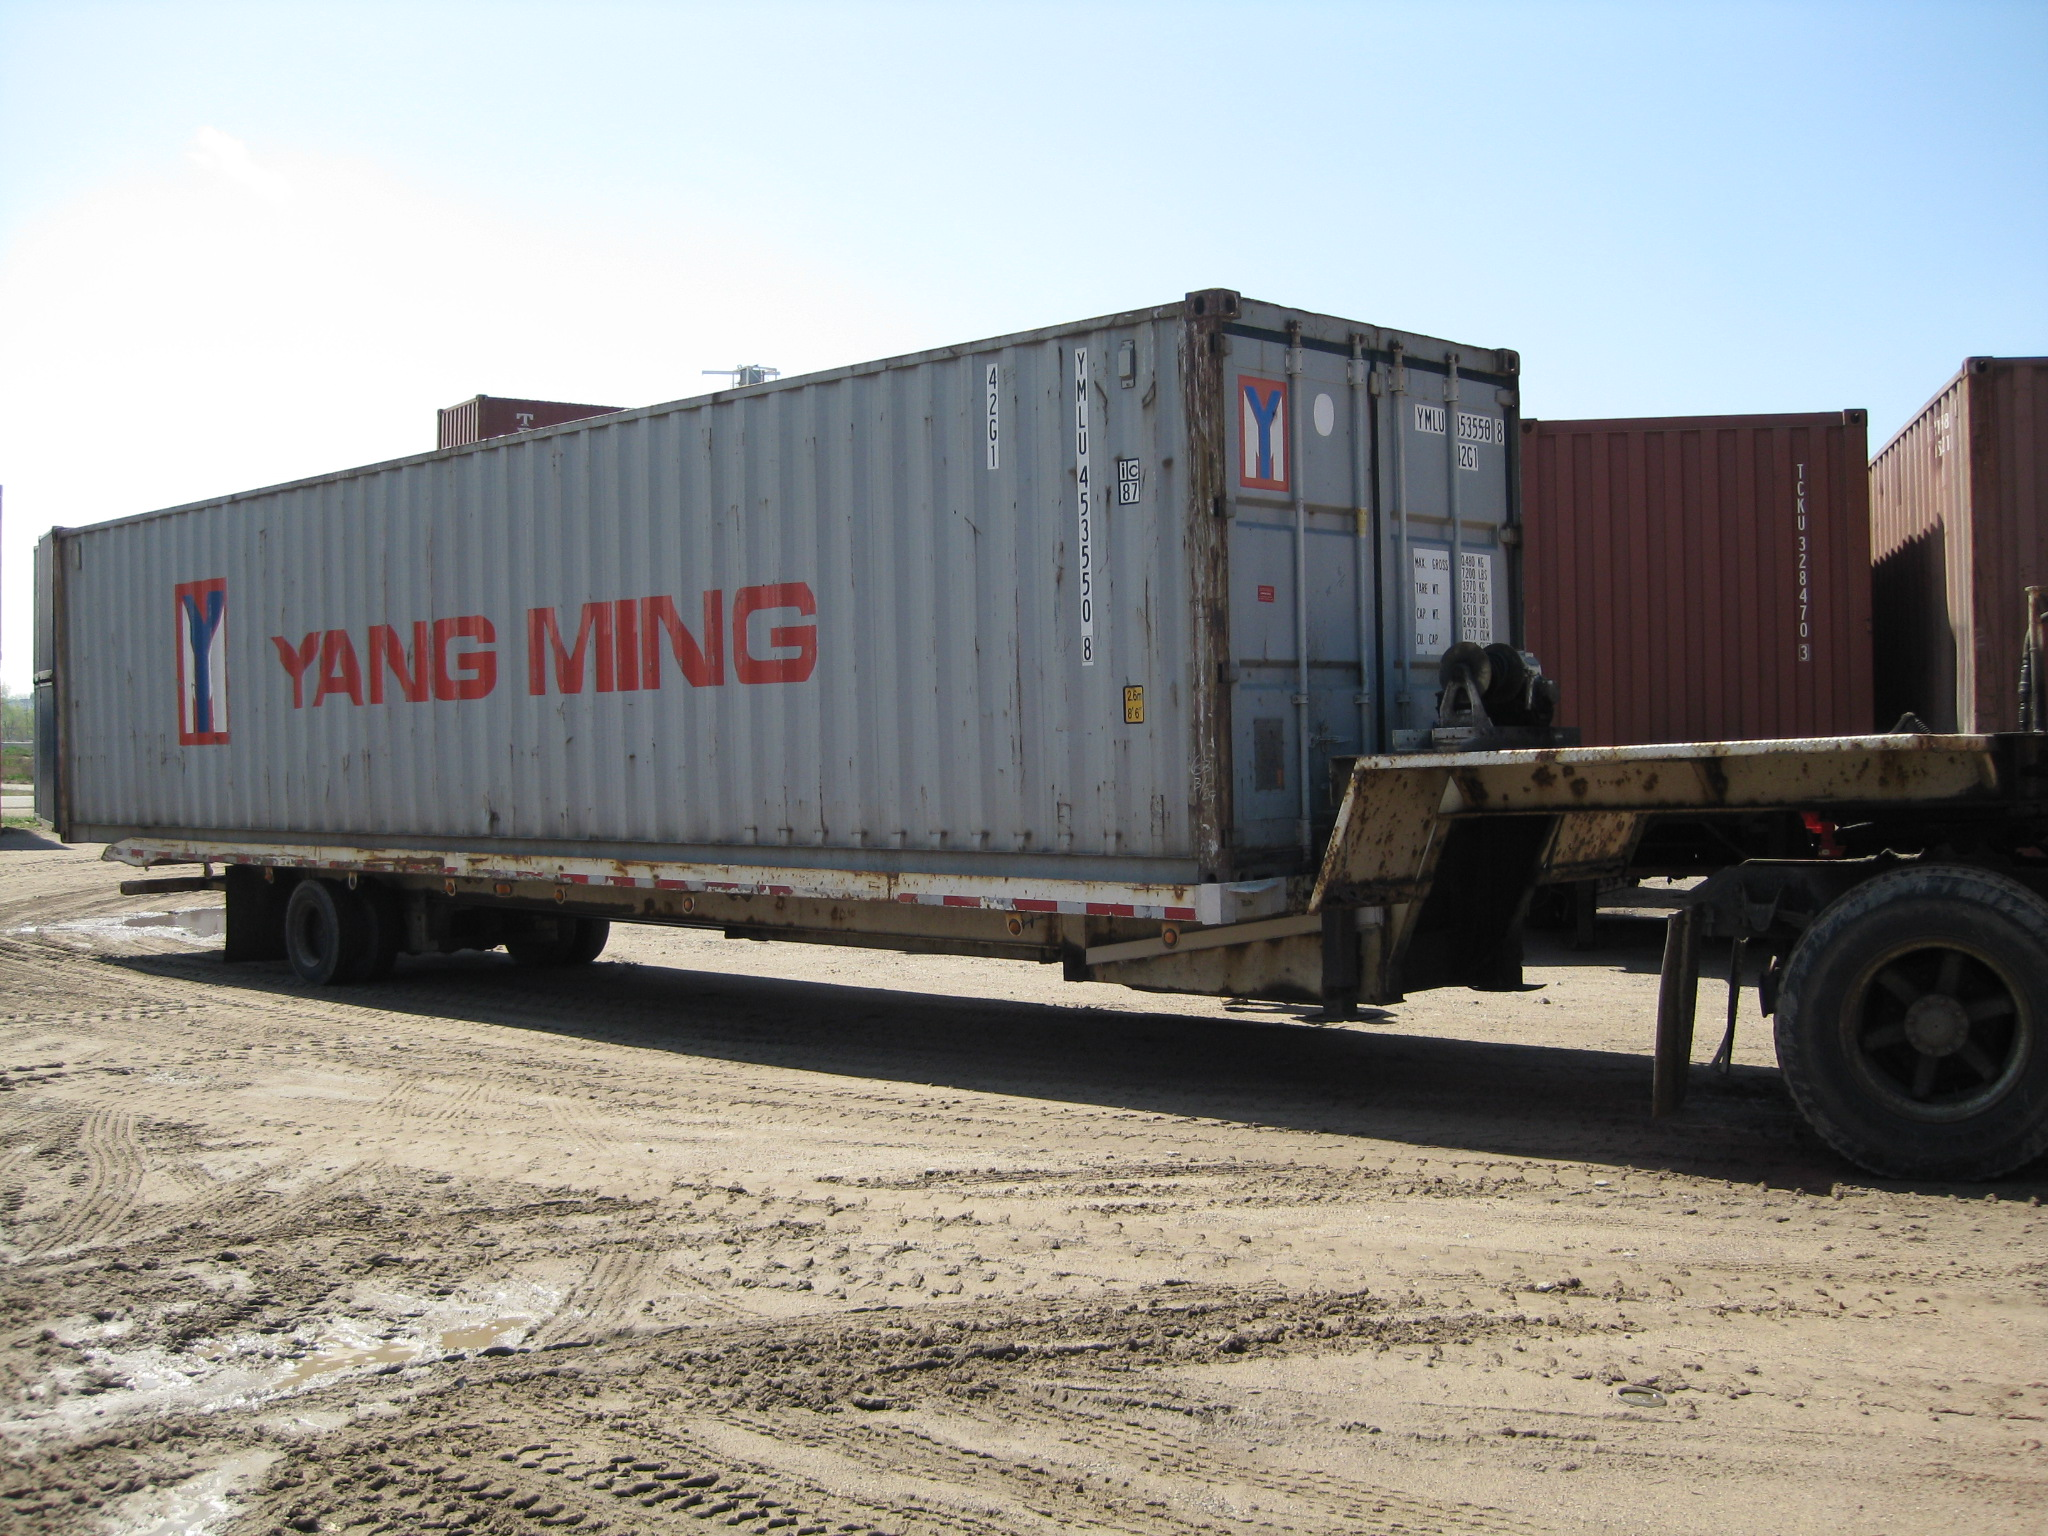 40 Shipping Containers For Sale Ebay >> Thinking Of Buying A Container On Ebay Or Craigslist 4